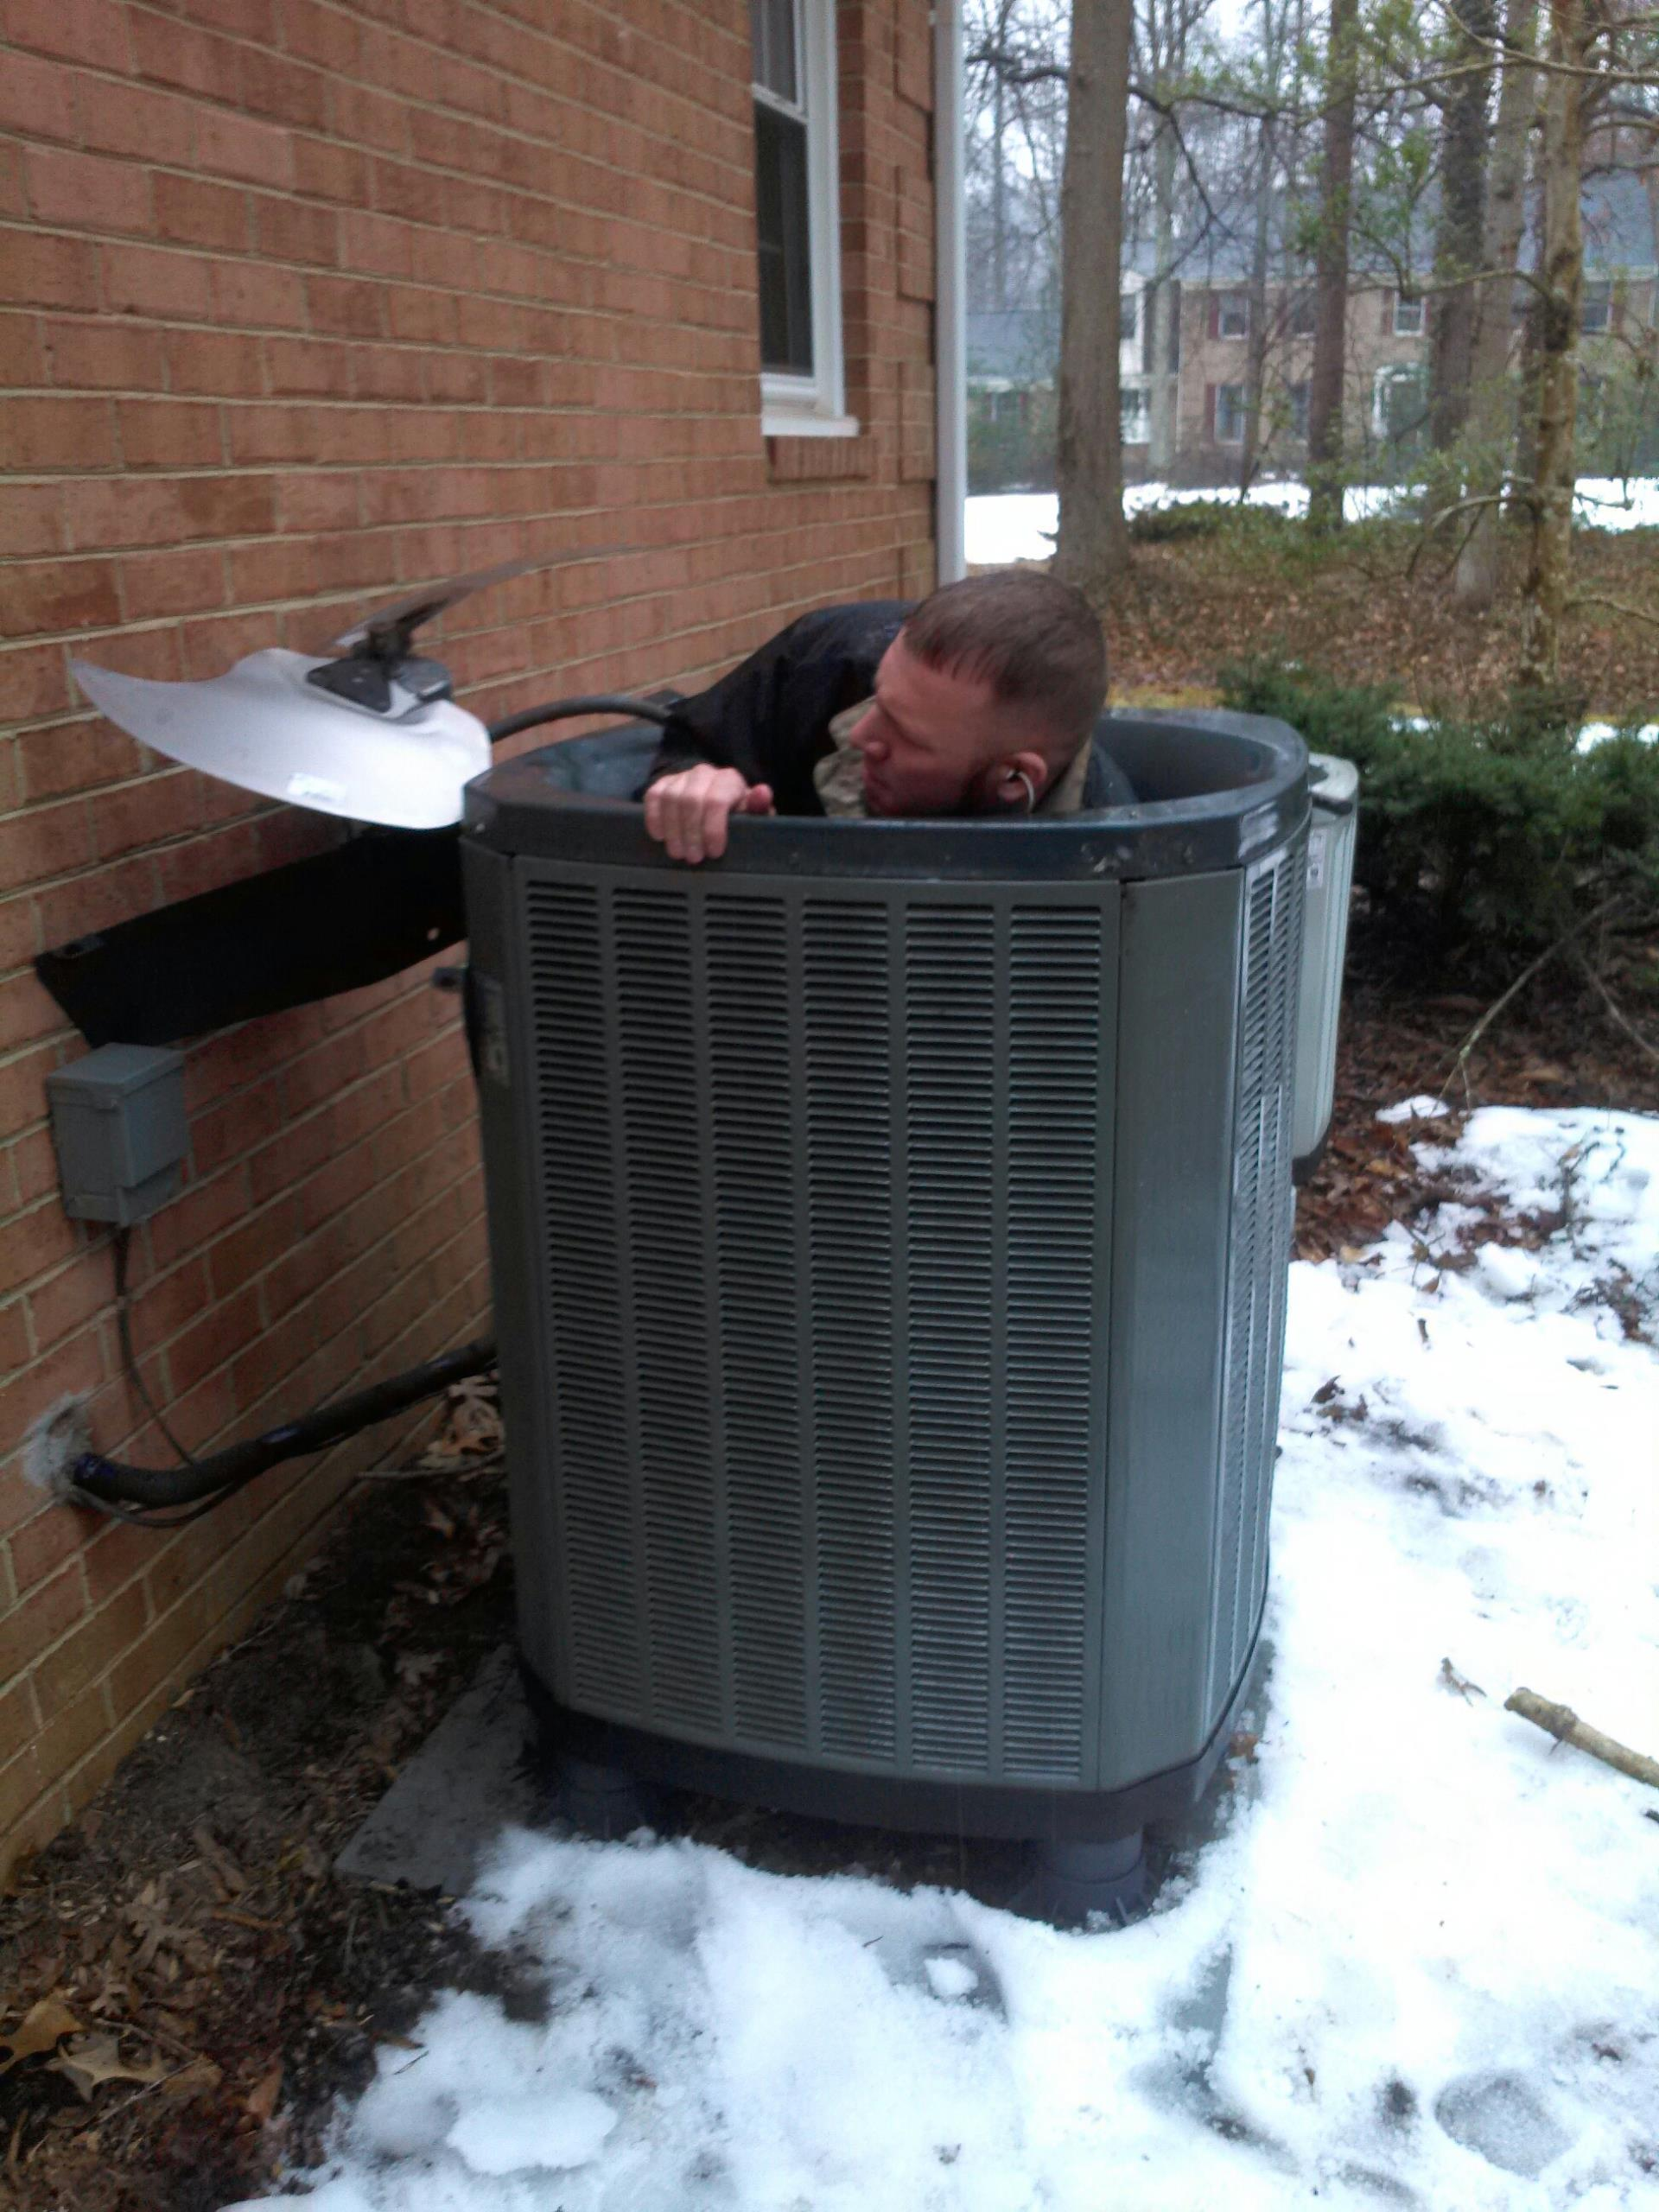 Gambrills, MD - Trane Heat pump AC air conditioning system installation repair service call in Gambrills Maryland 21054